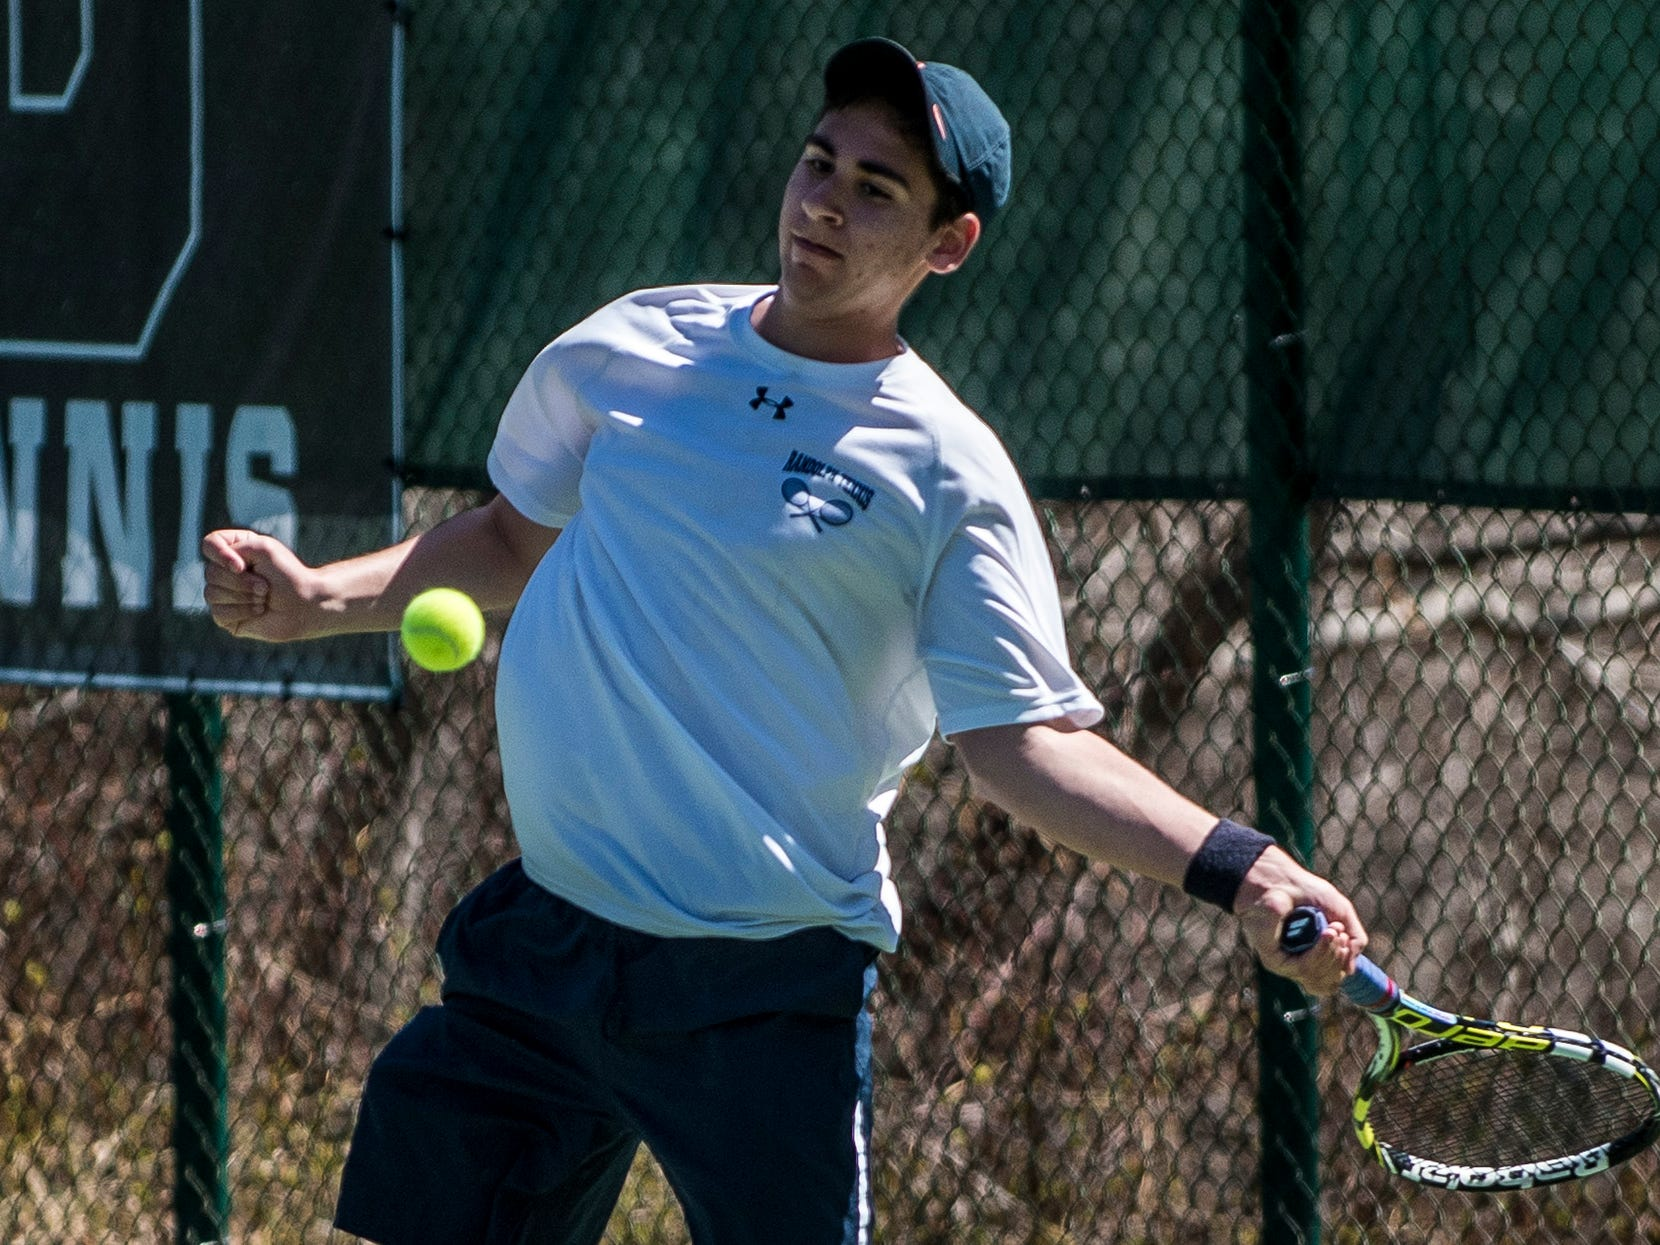 Randolph's Justin Gold plays in the consolation final against Holmdel at the Bryan Bennett Tournament at Delbarton on April 15.